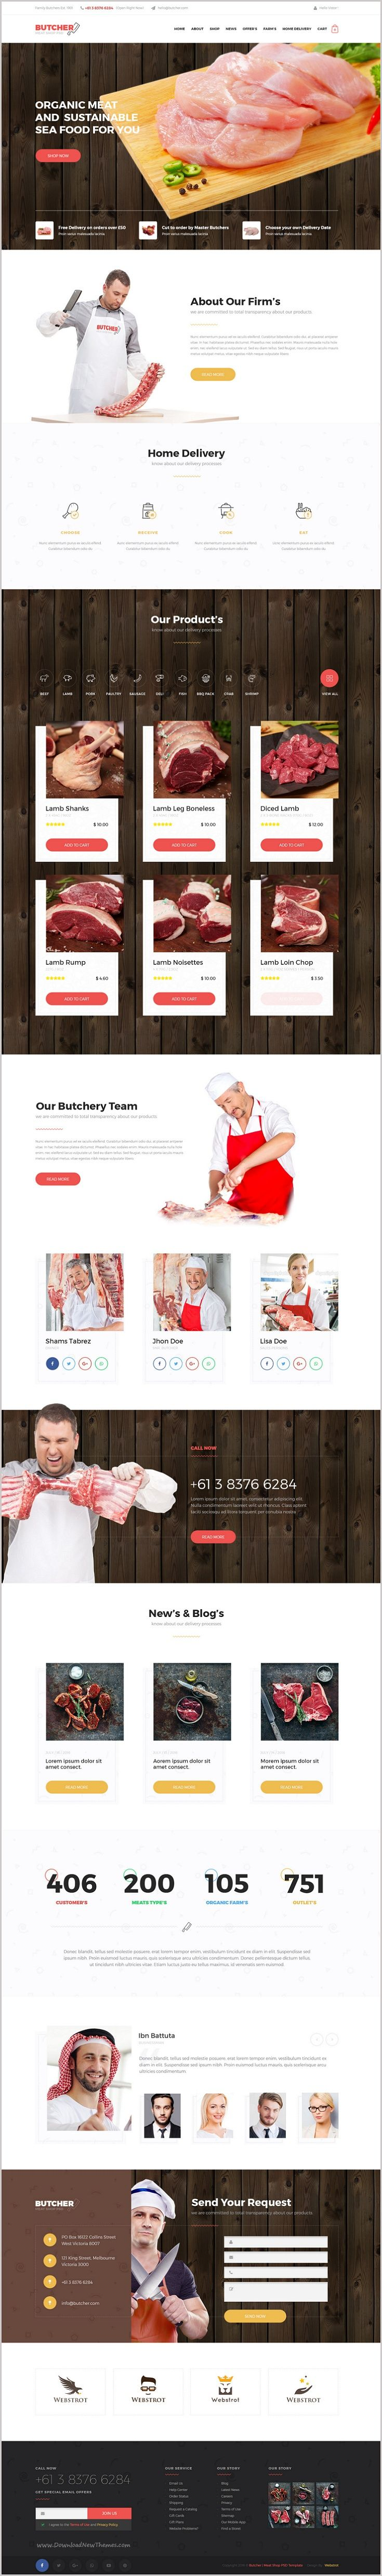 Butcher is a beautifully design #PSD template for #meat shop #marketplace website Download Now➯ https://themeforest.net/item/butcher-meat-shop-psd-template/17259899?ref=Datasata